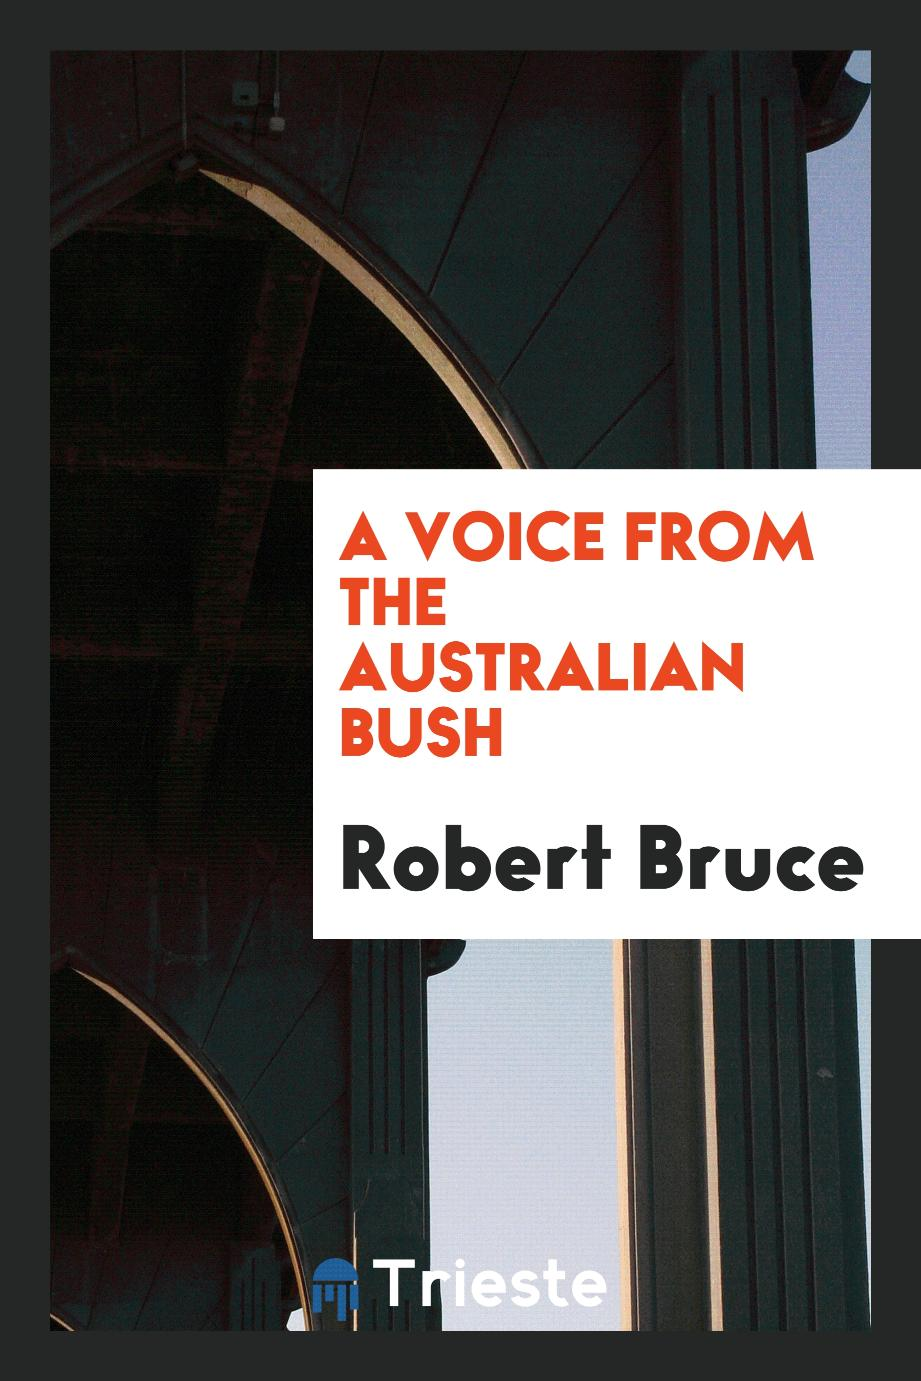 A Voice from the Australian Bush